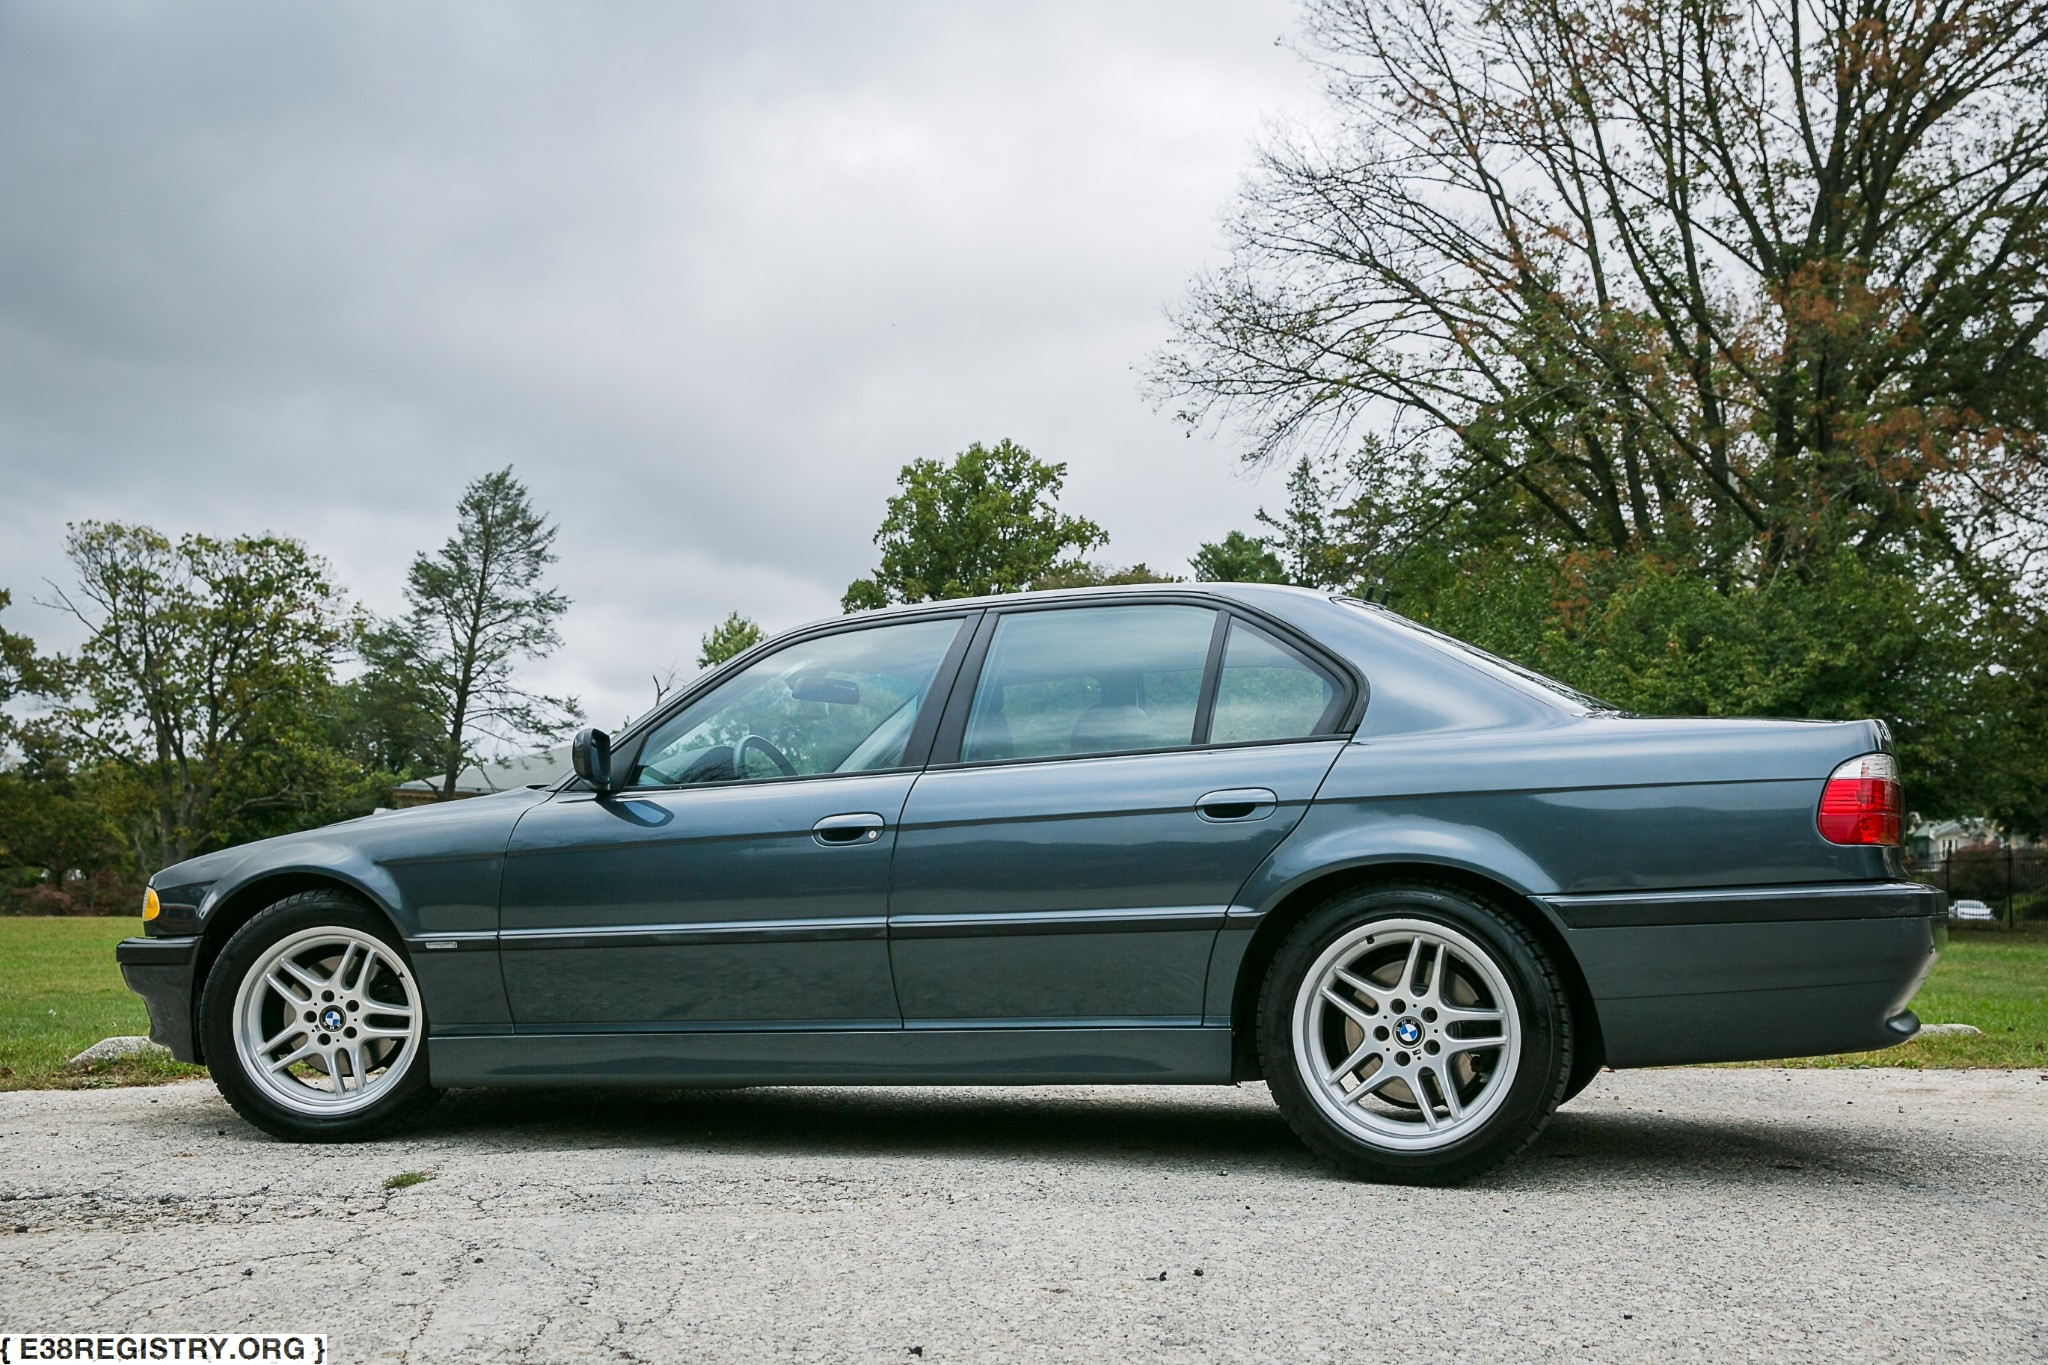 Anthrazit Metallic Bmw For Sale 740i Sport Dn87294 The Bmw E38 7 Series Registry